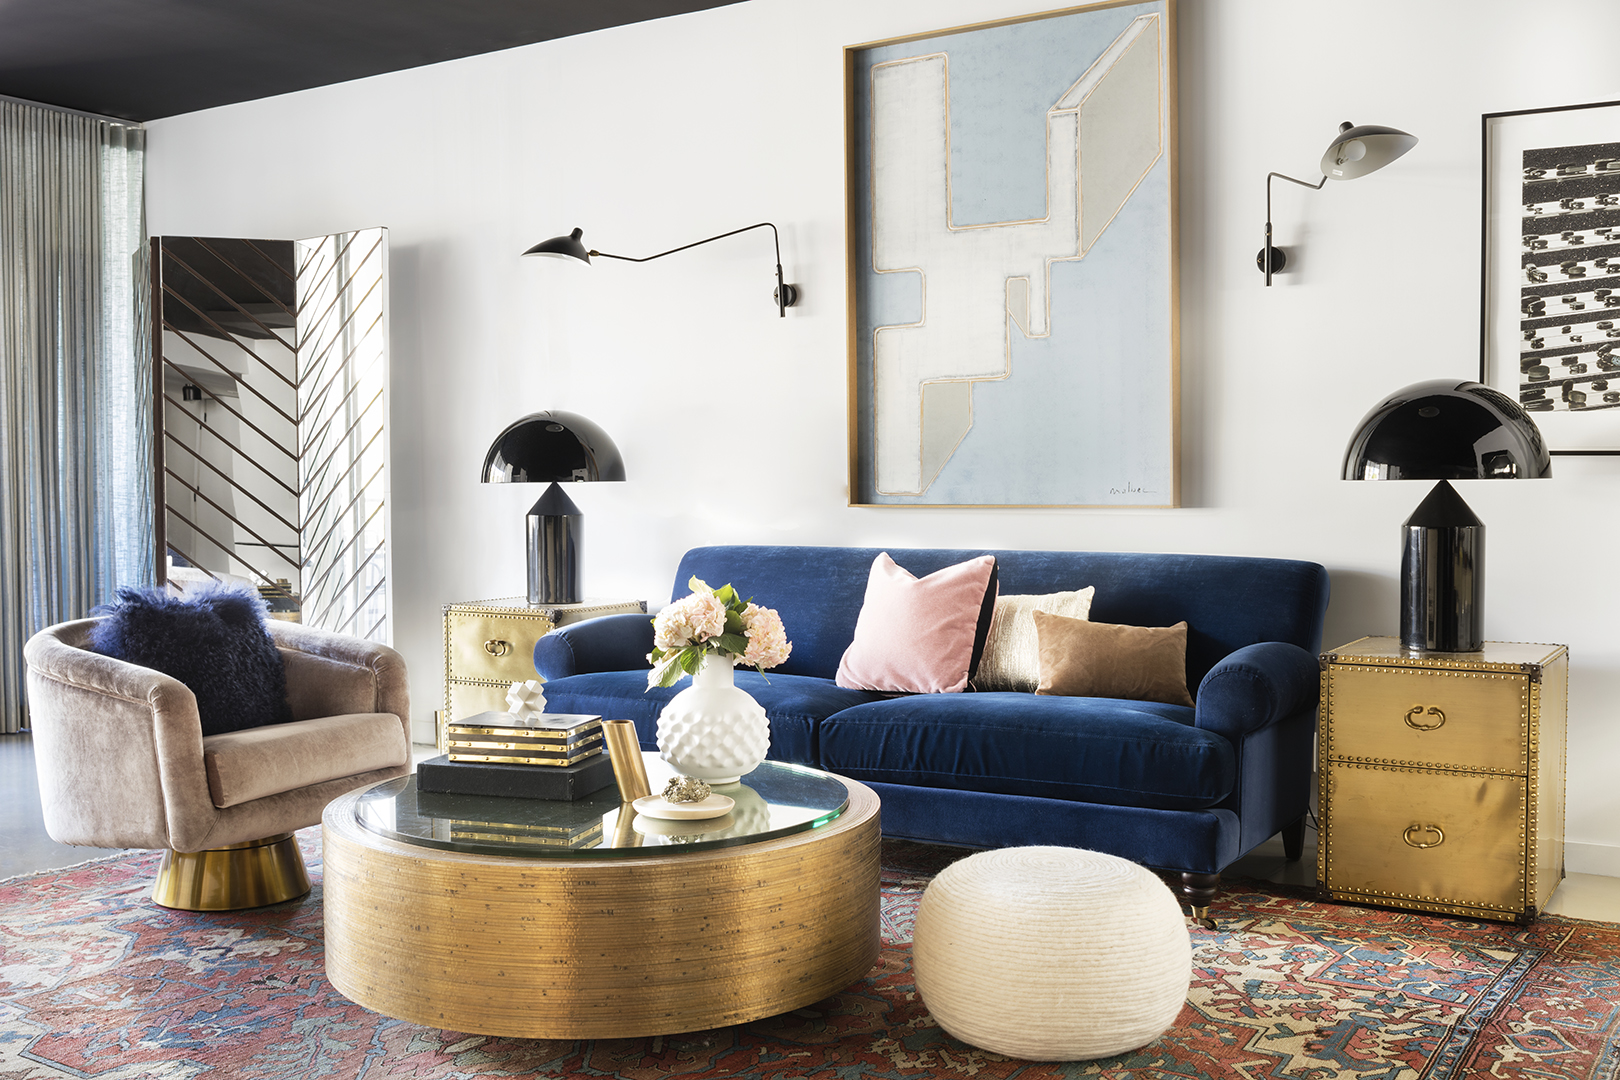 brass accents and furniture in modern living room